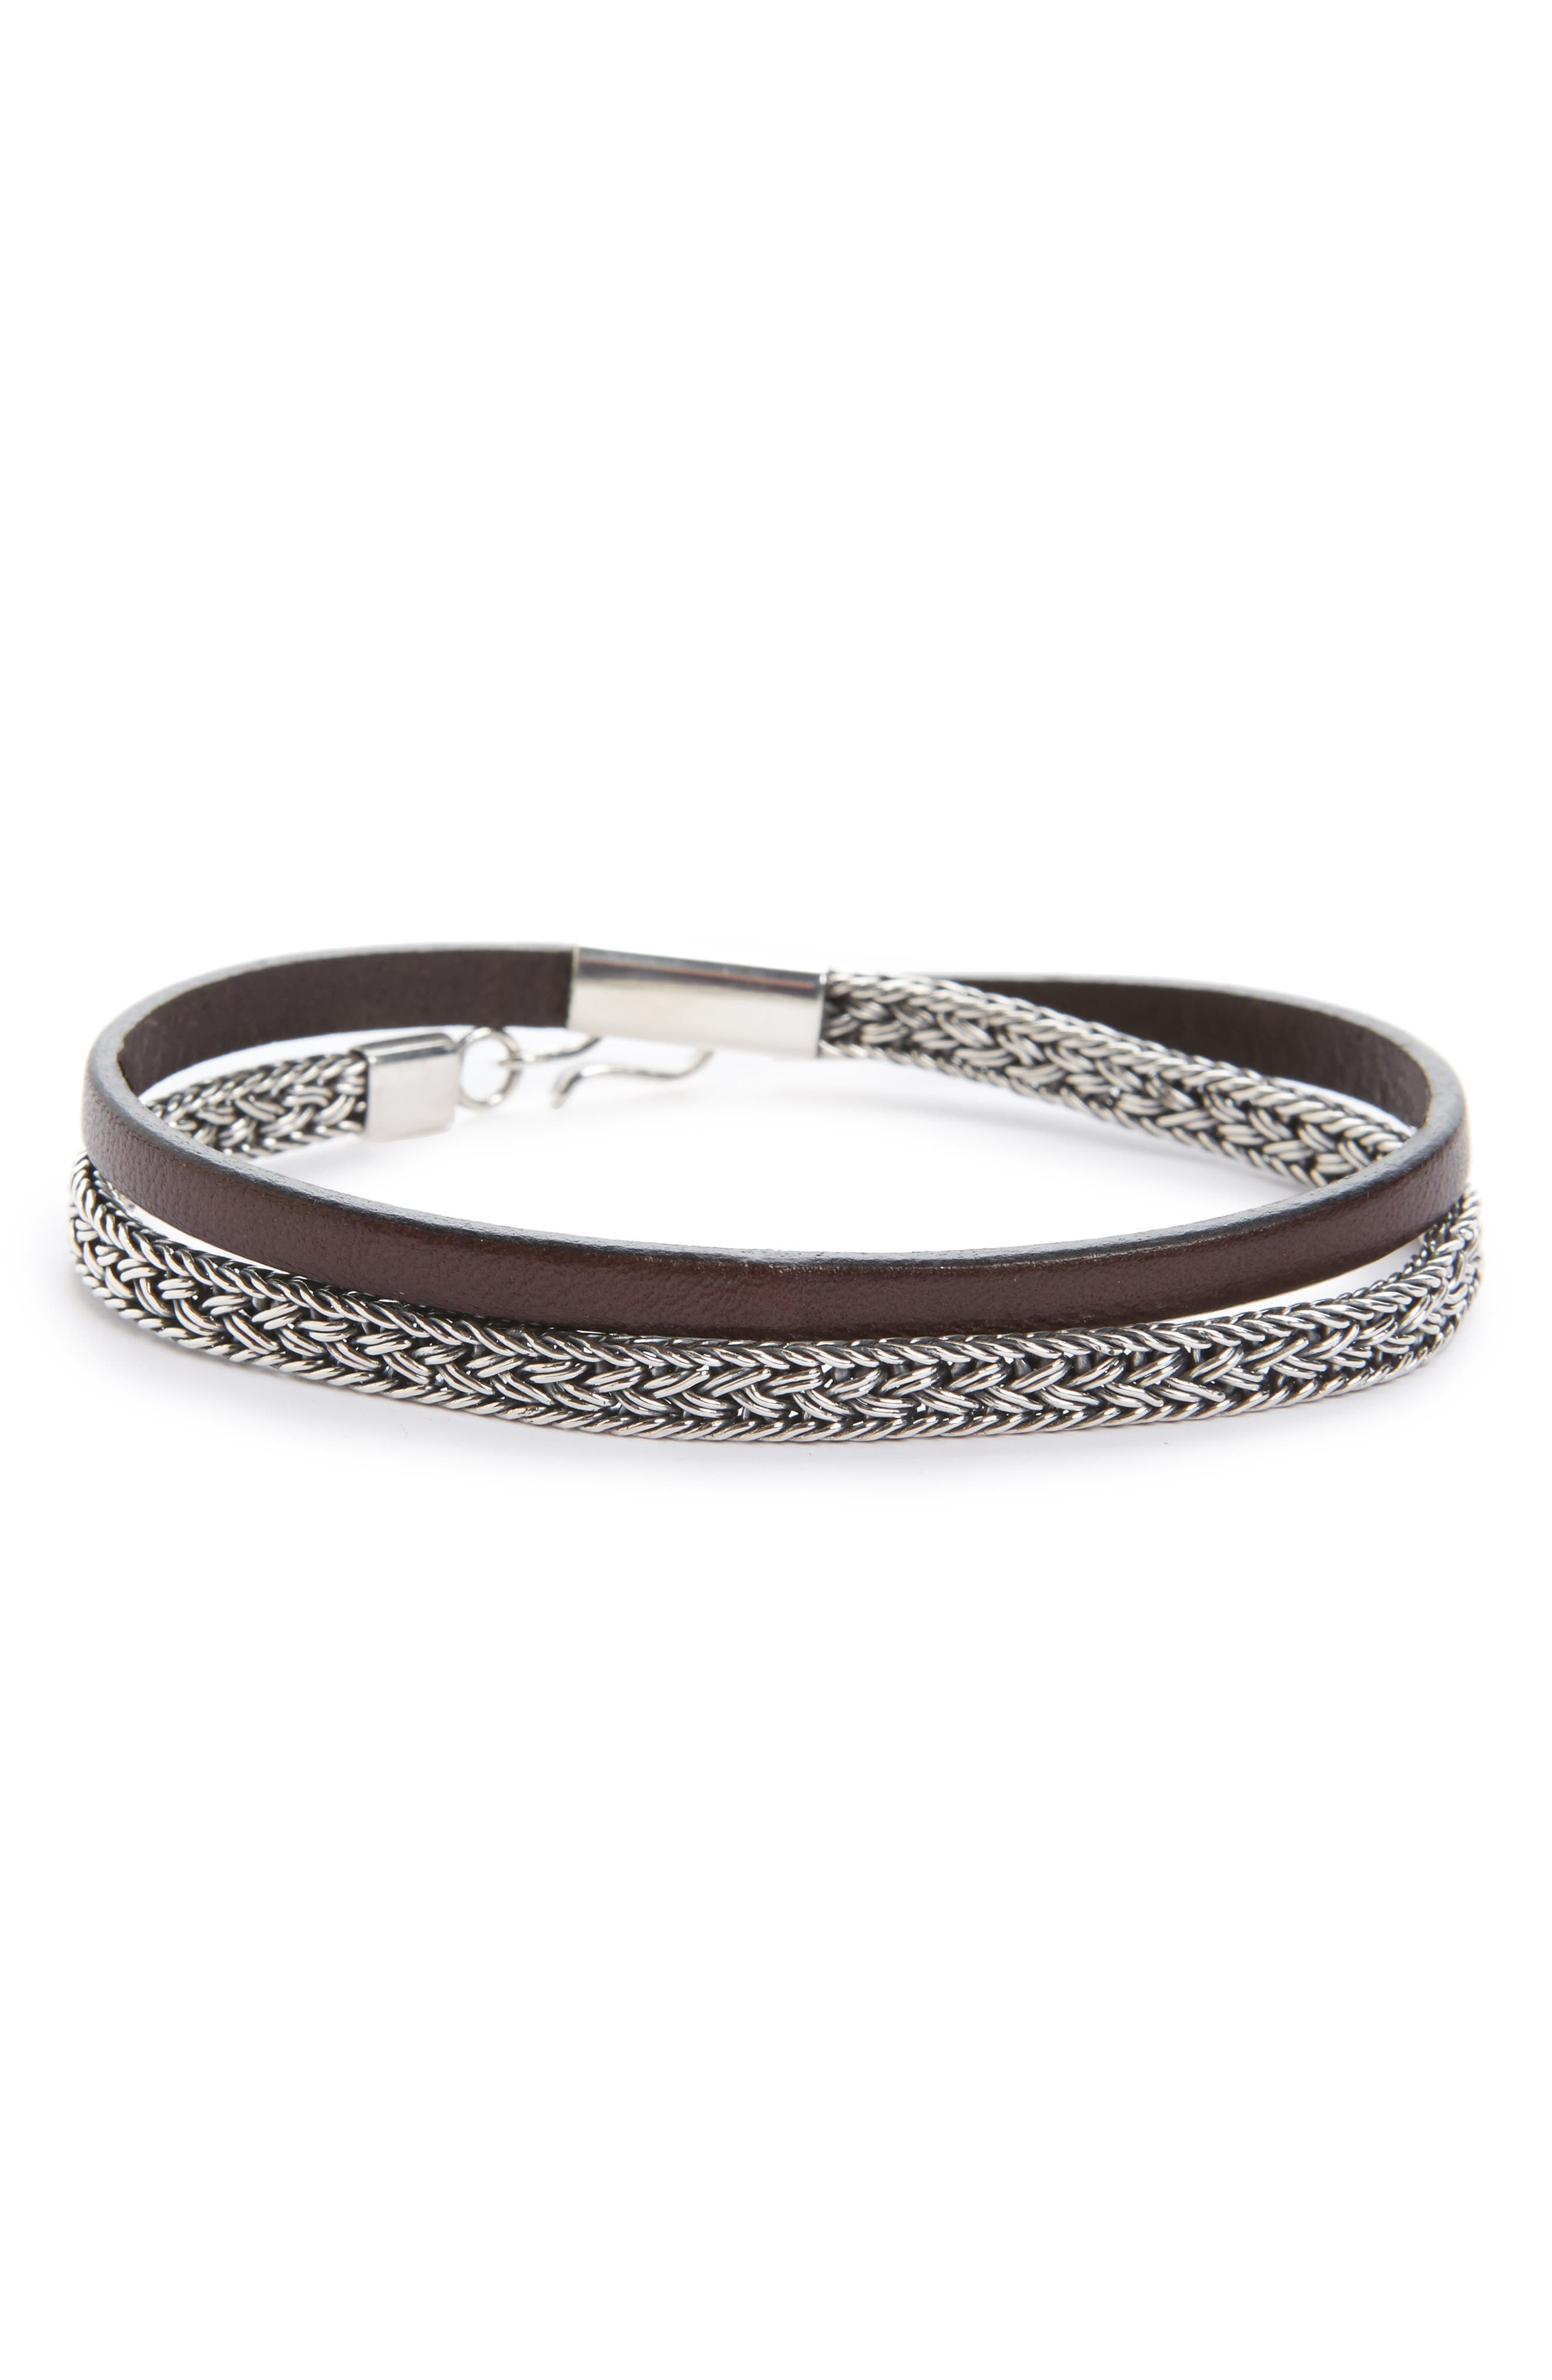 Caputo & Co. Sterling Silver & Leather Wrap Bracelet